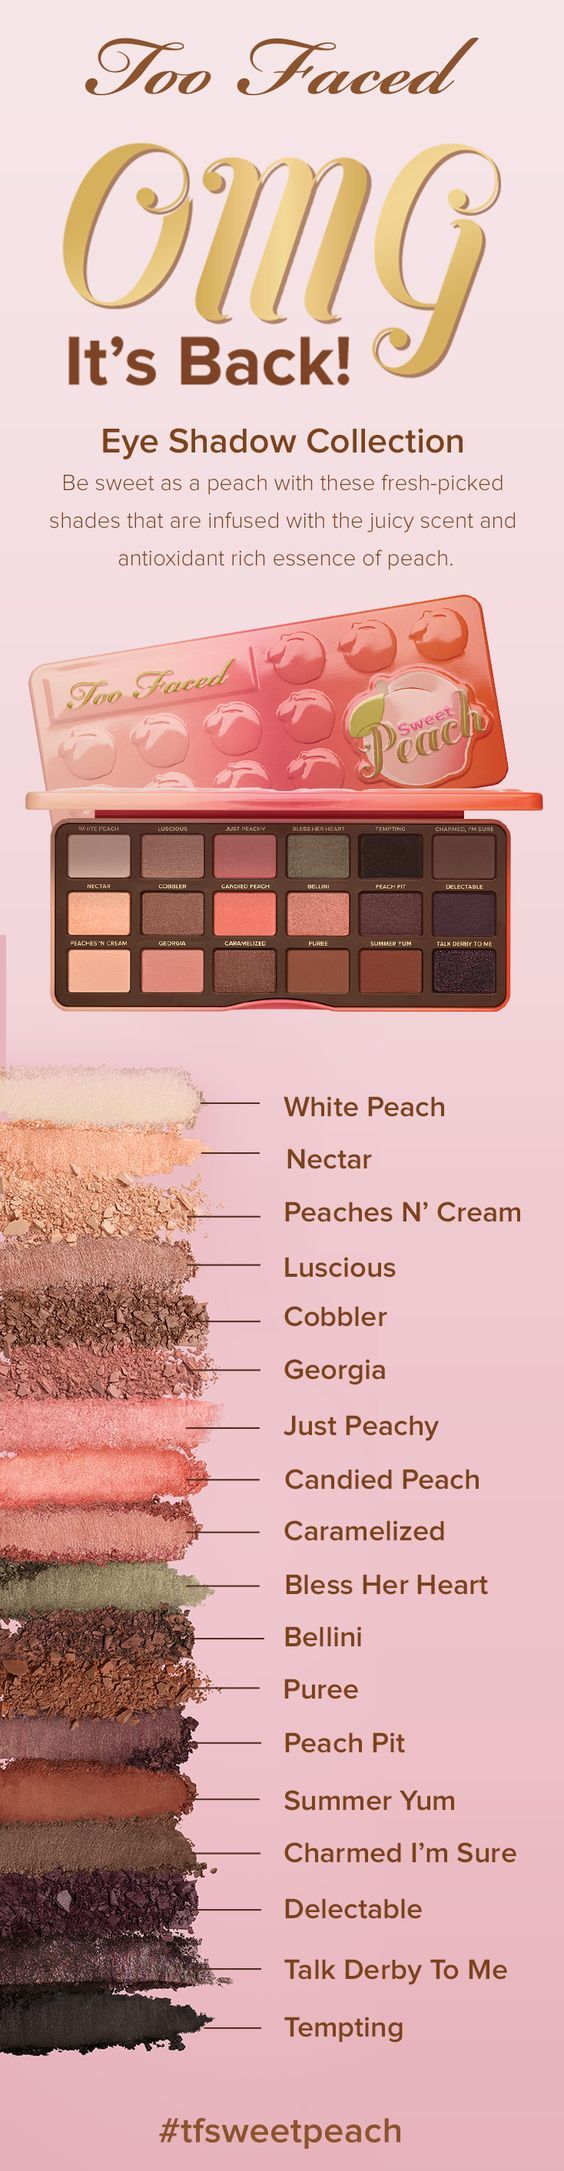 The Too Faced Sweet Peach Palette is one of the best eyeshadow palettes!